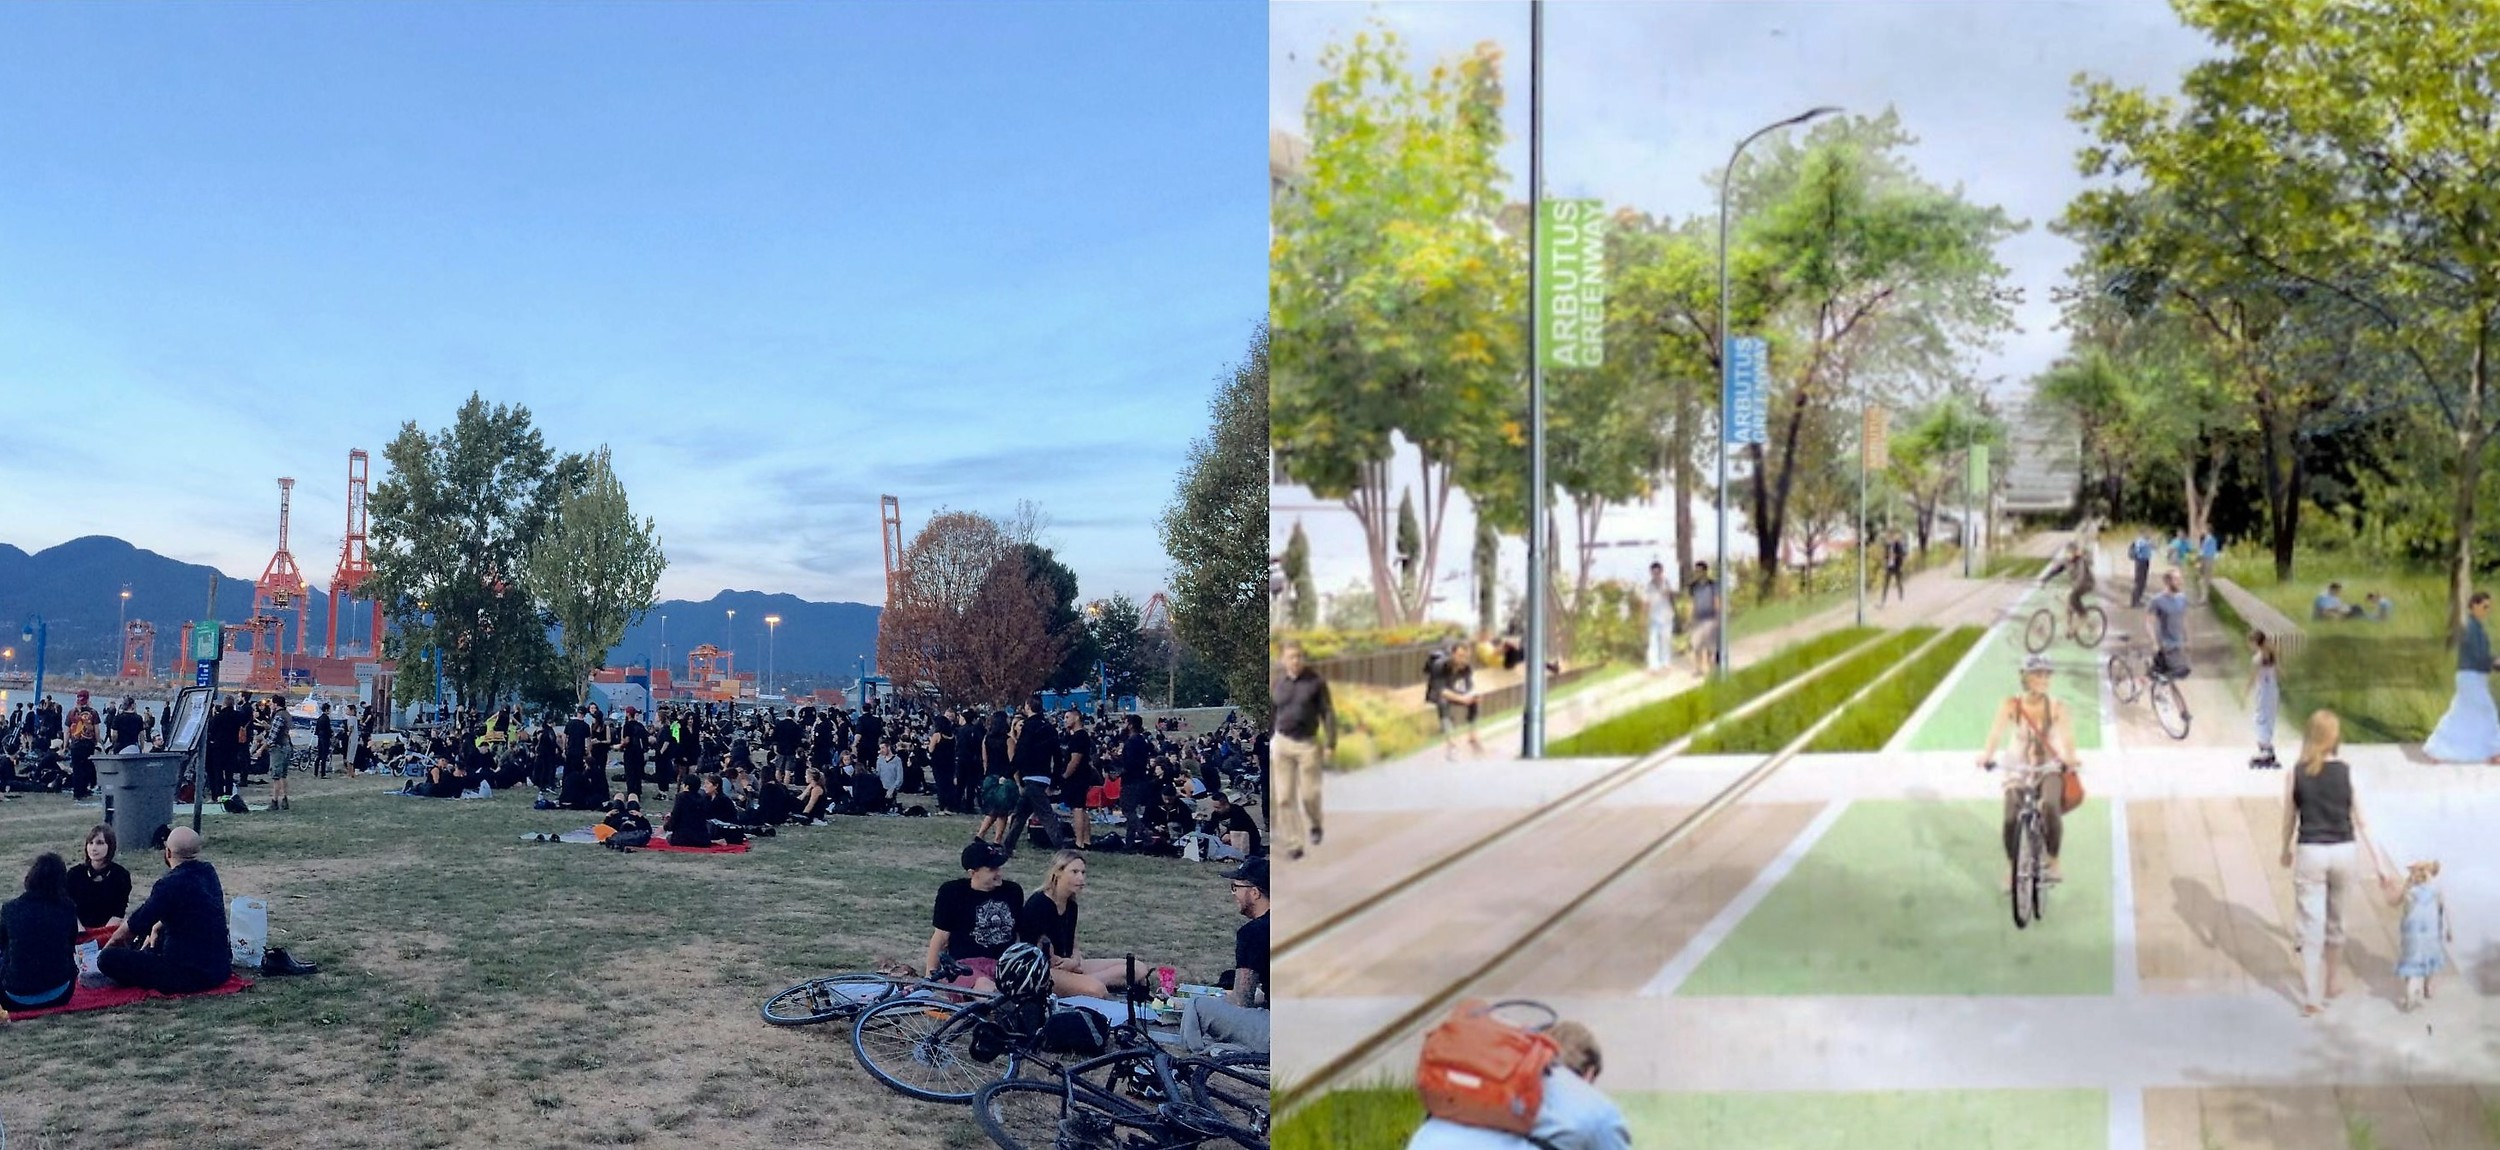 Left:  Ce Soir Noir at Crab Park. Photo by author.  Right:  Plans for the Arbutus Greenway. Image by City of Vancouver.